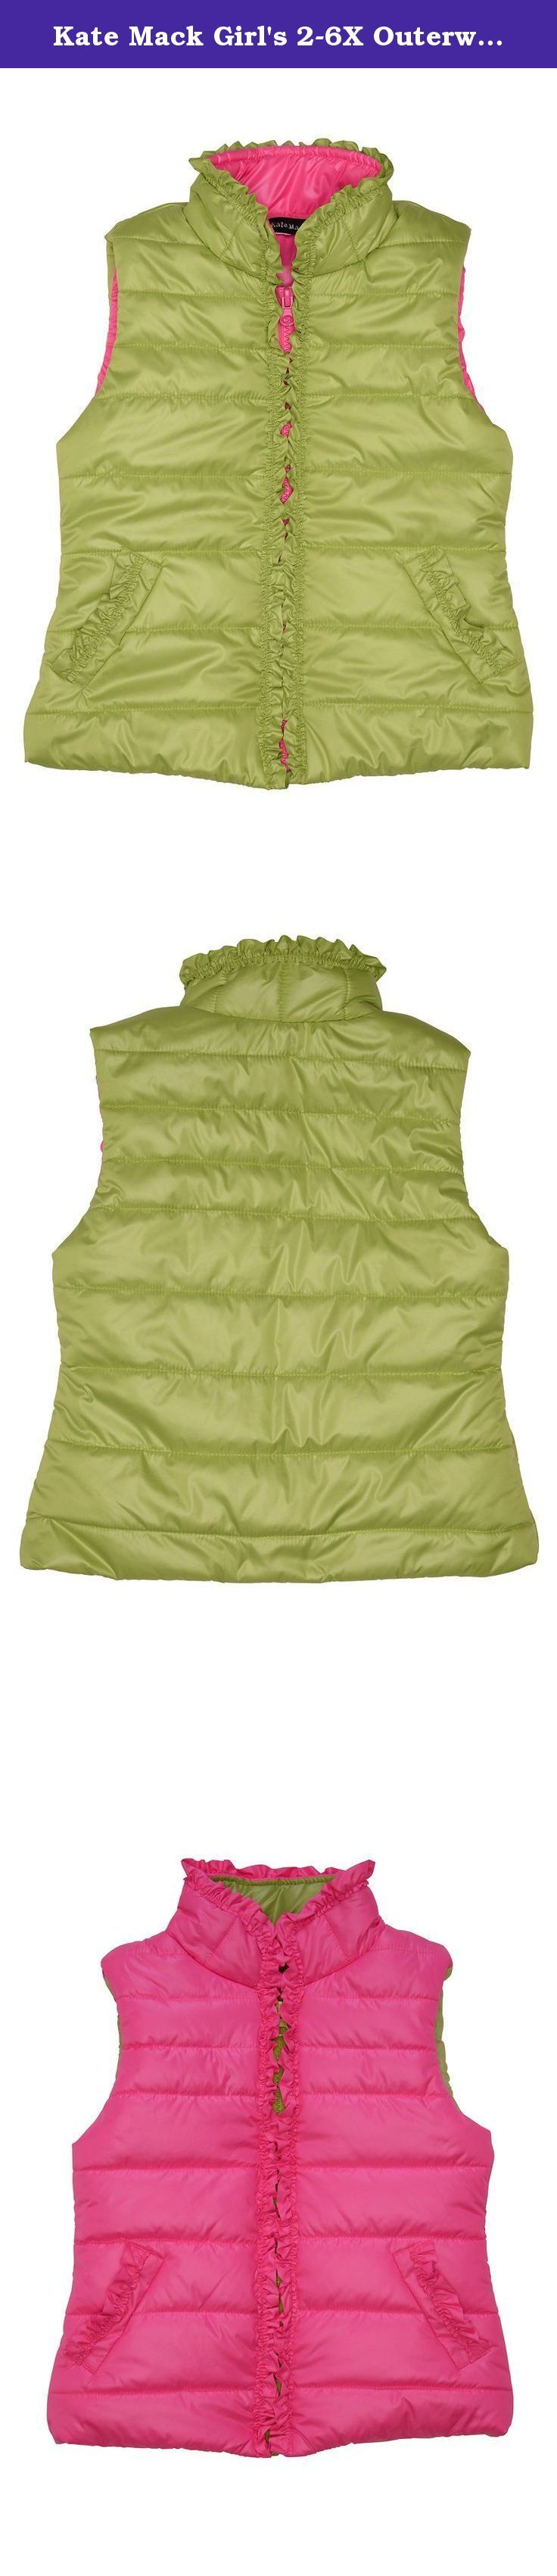 Kate Mack Girl's 2-6X Outerwear Essentials Polyfill Vest - Size 6X, Green. Girly ruffle trim adds a bit of personality to this adorable polyfill vest.